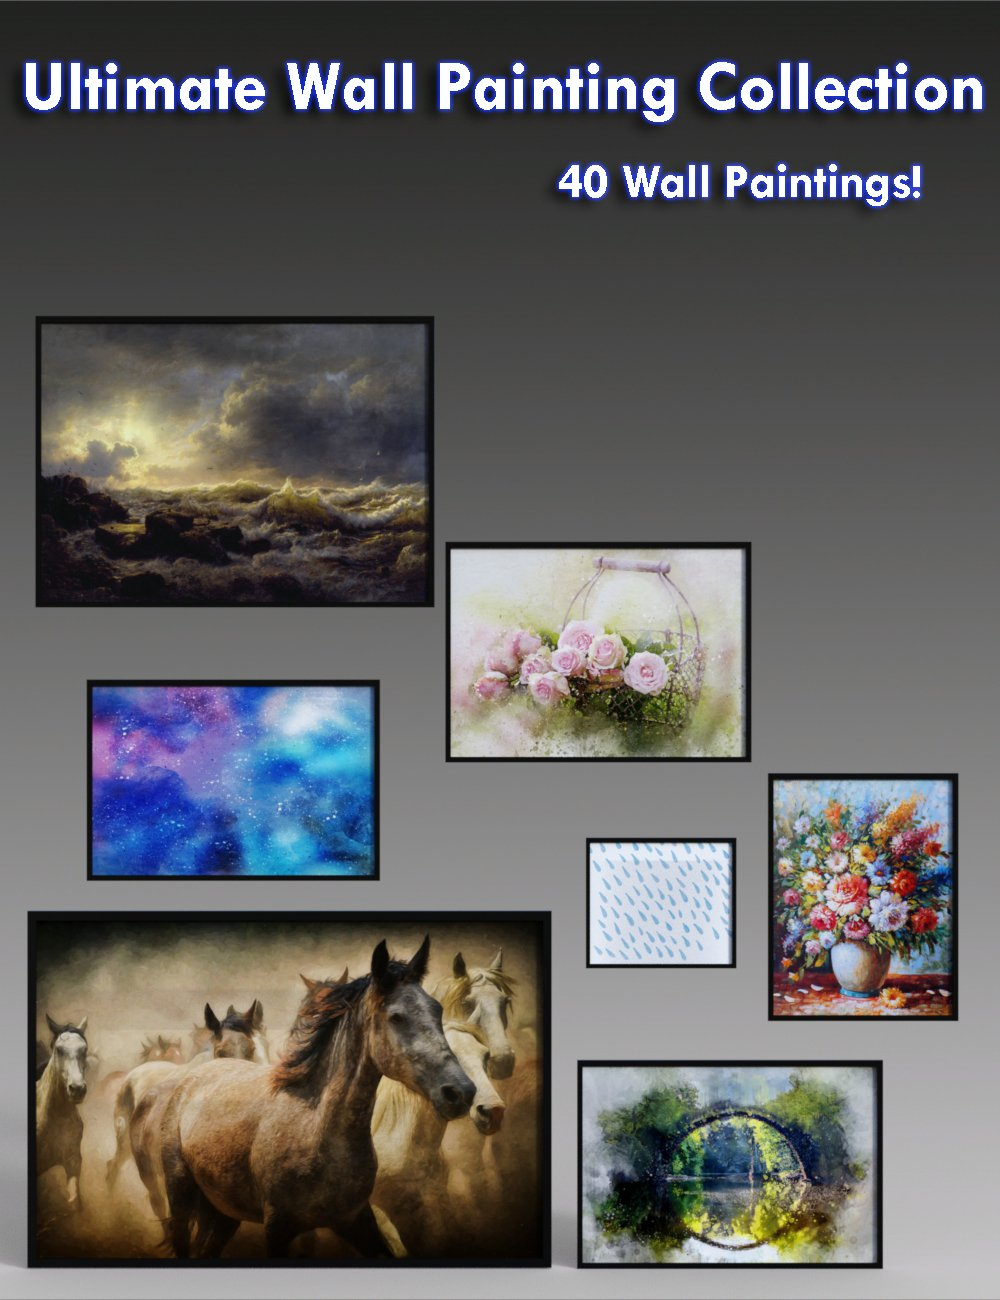 Ultimate Wall Painting Collection_DAZ3D下载站